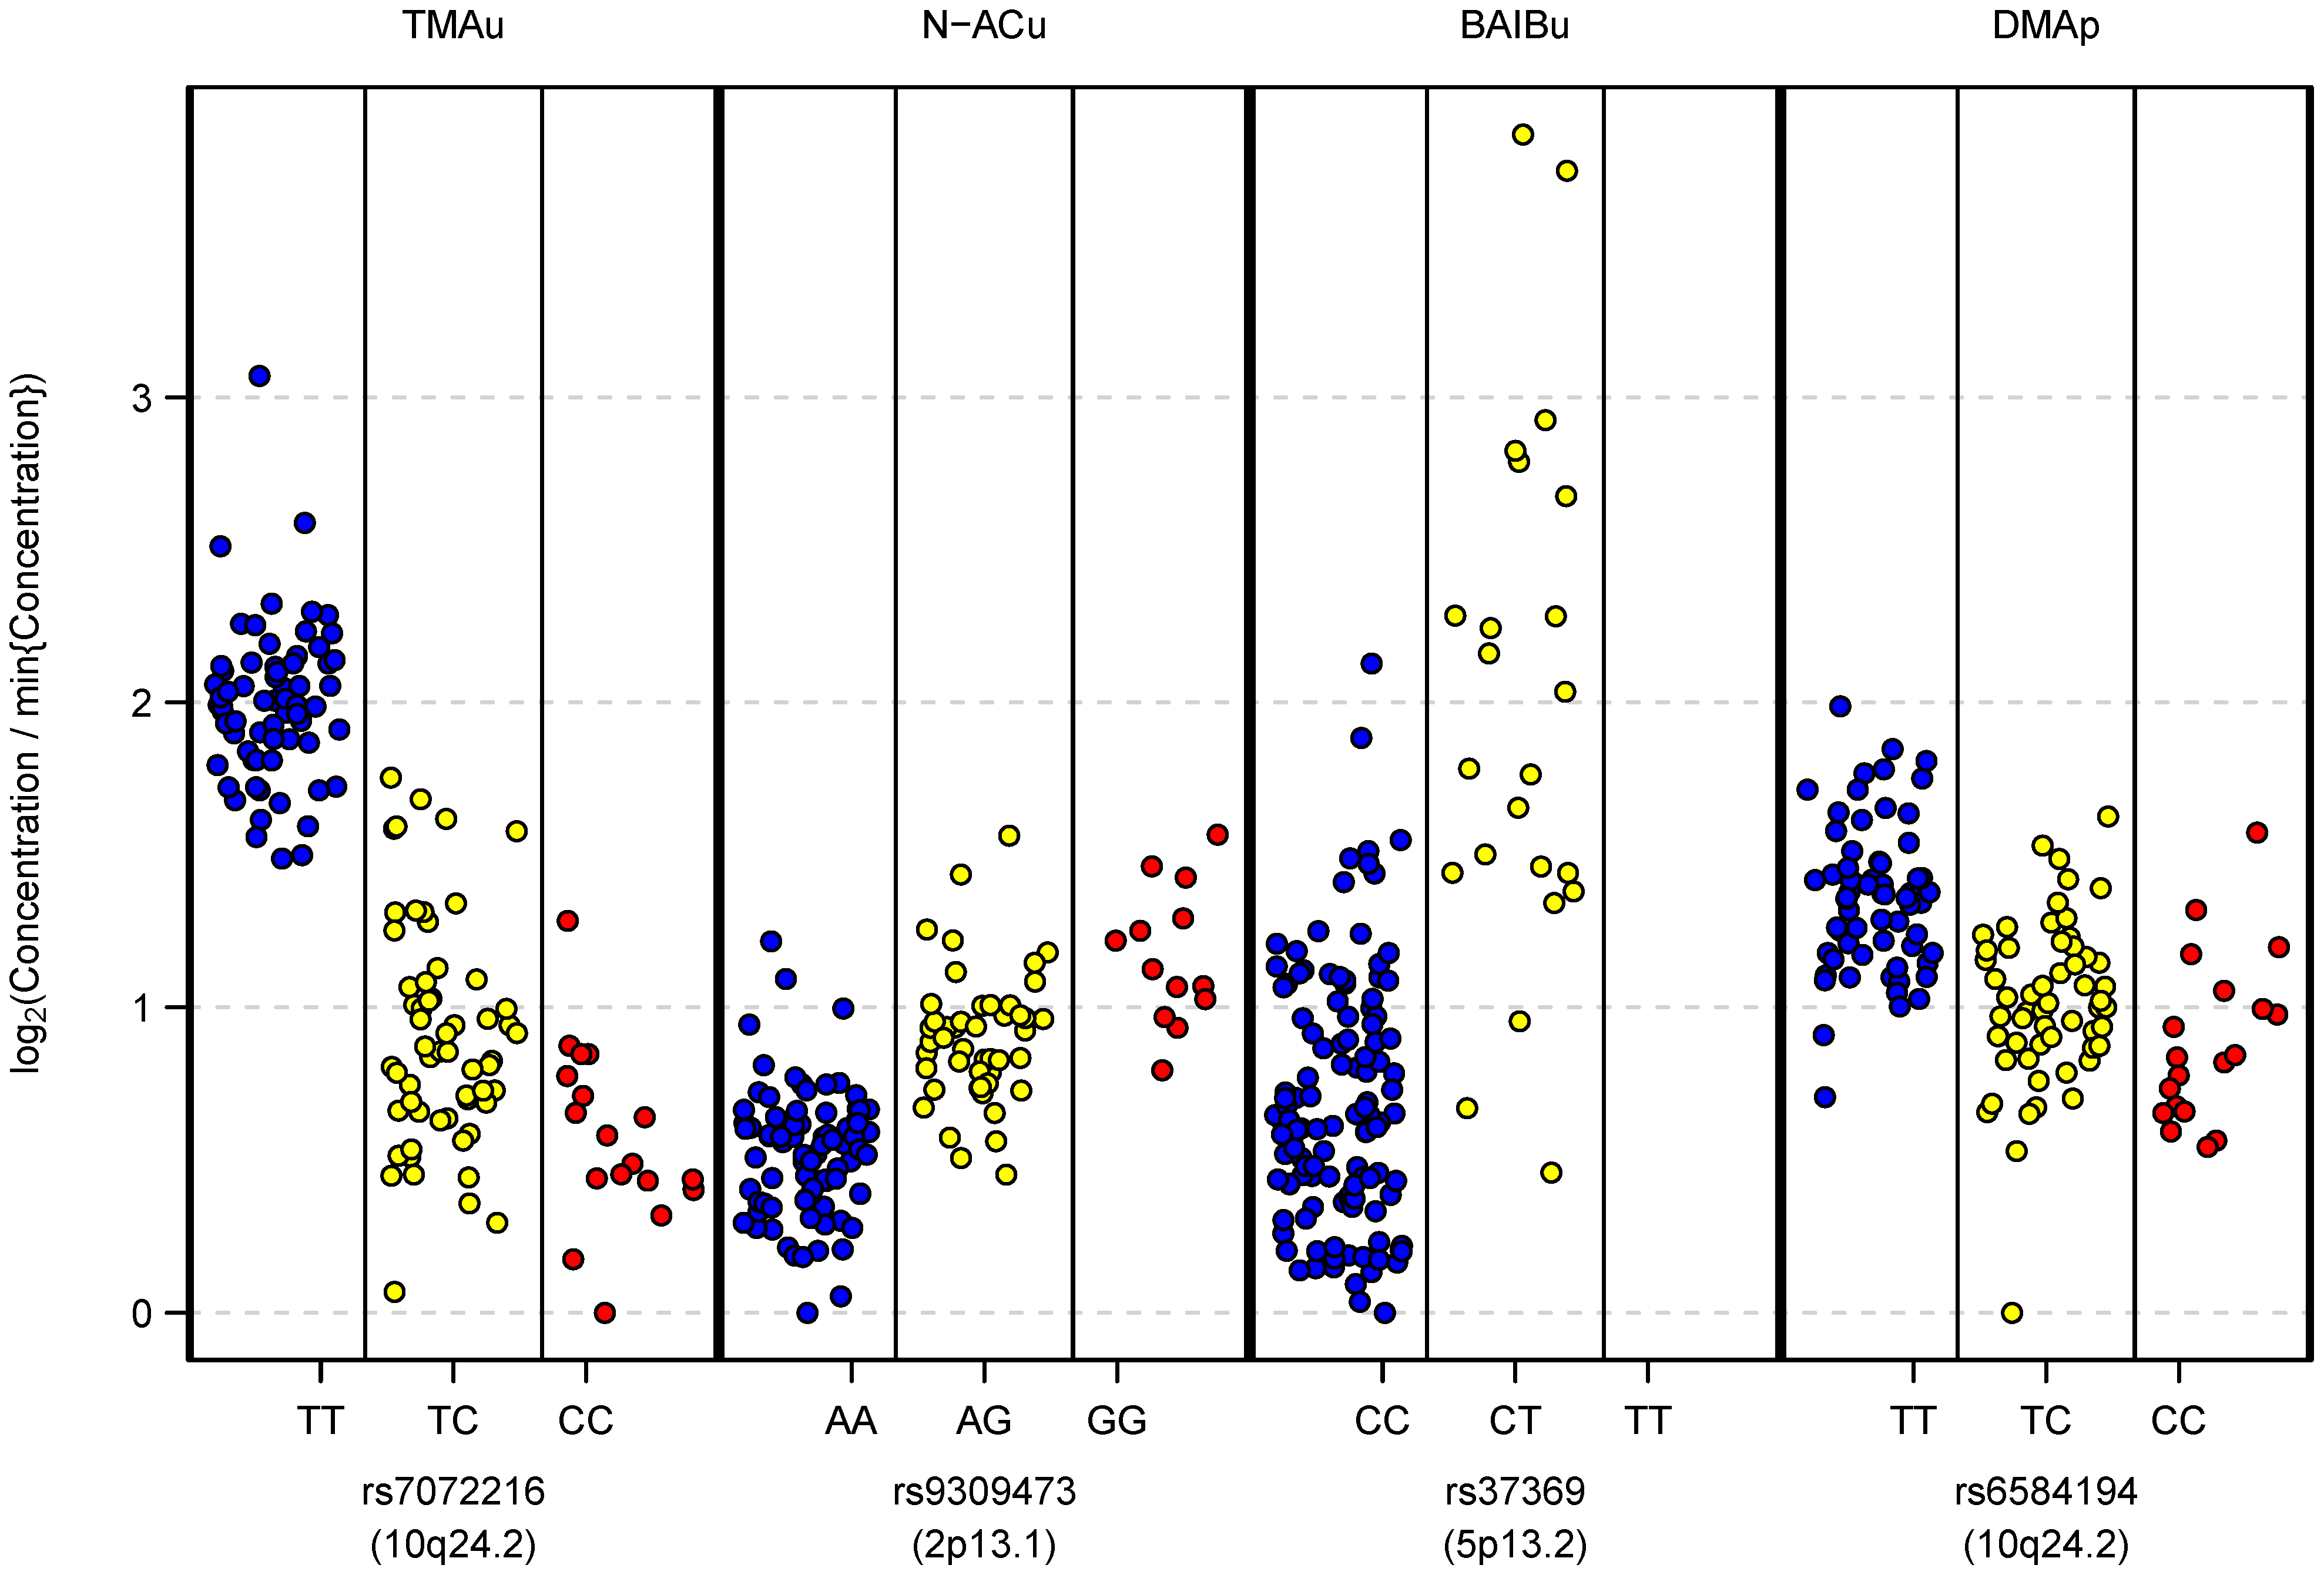 Relative metabolite concentrations against genotypes at their most significantly associated mQTL SNP.